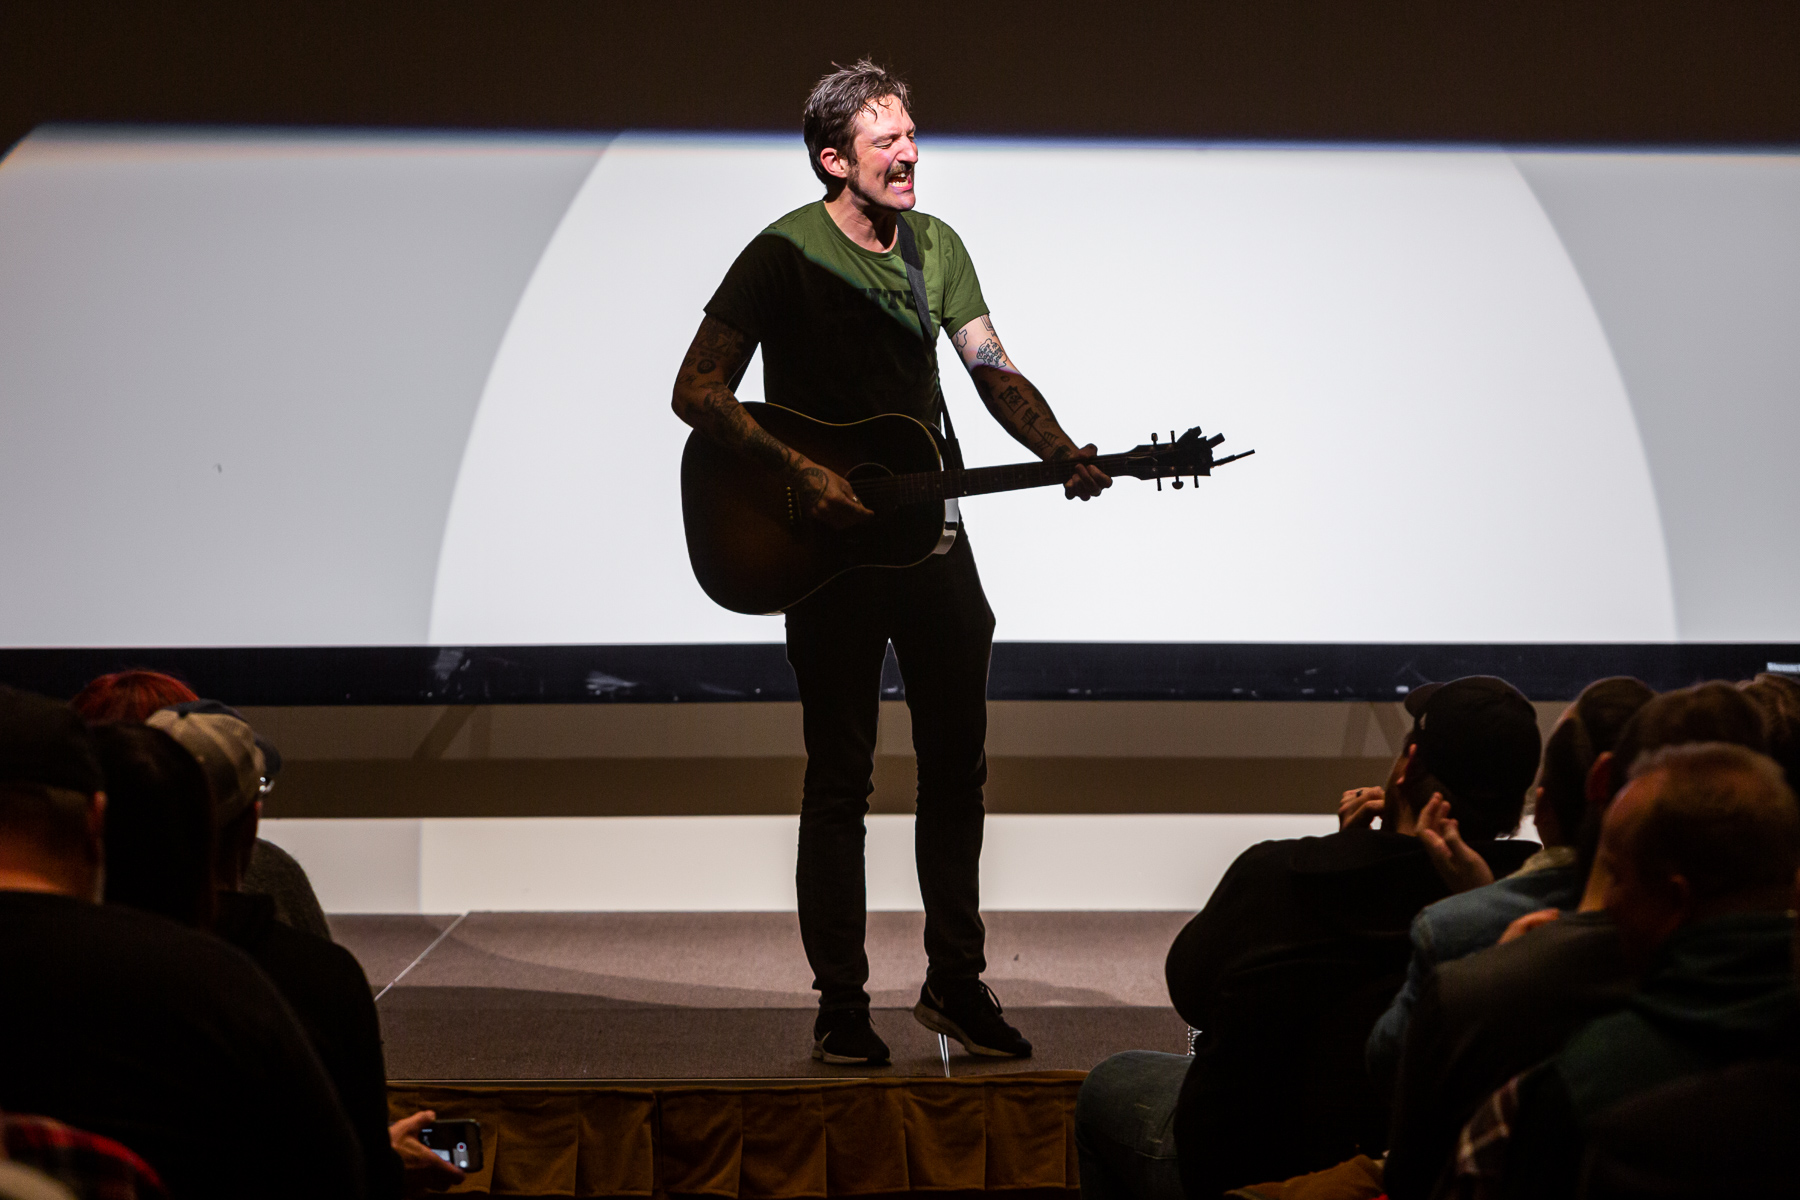 Frank Turner, musician, flew in from London to perform an acoustic set for the participants. (DePaul University/Randall Spriggs)